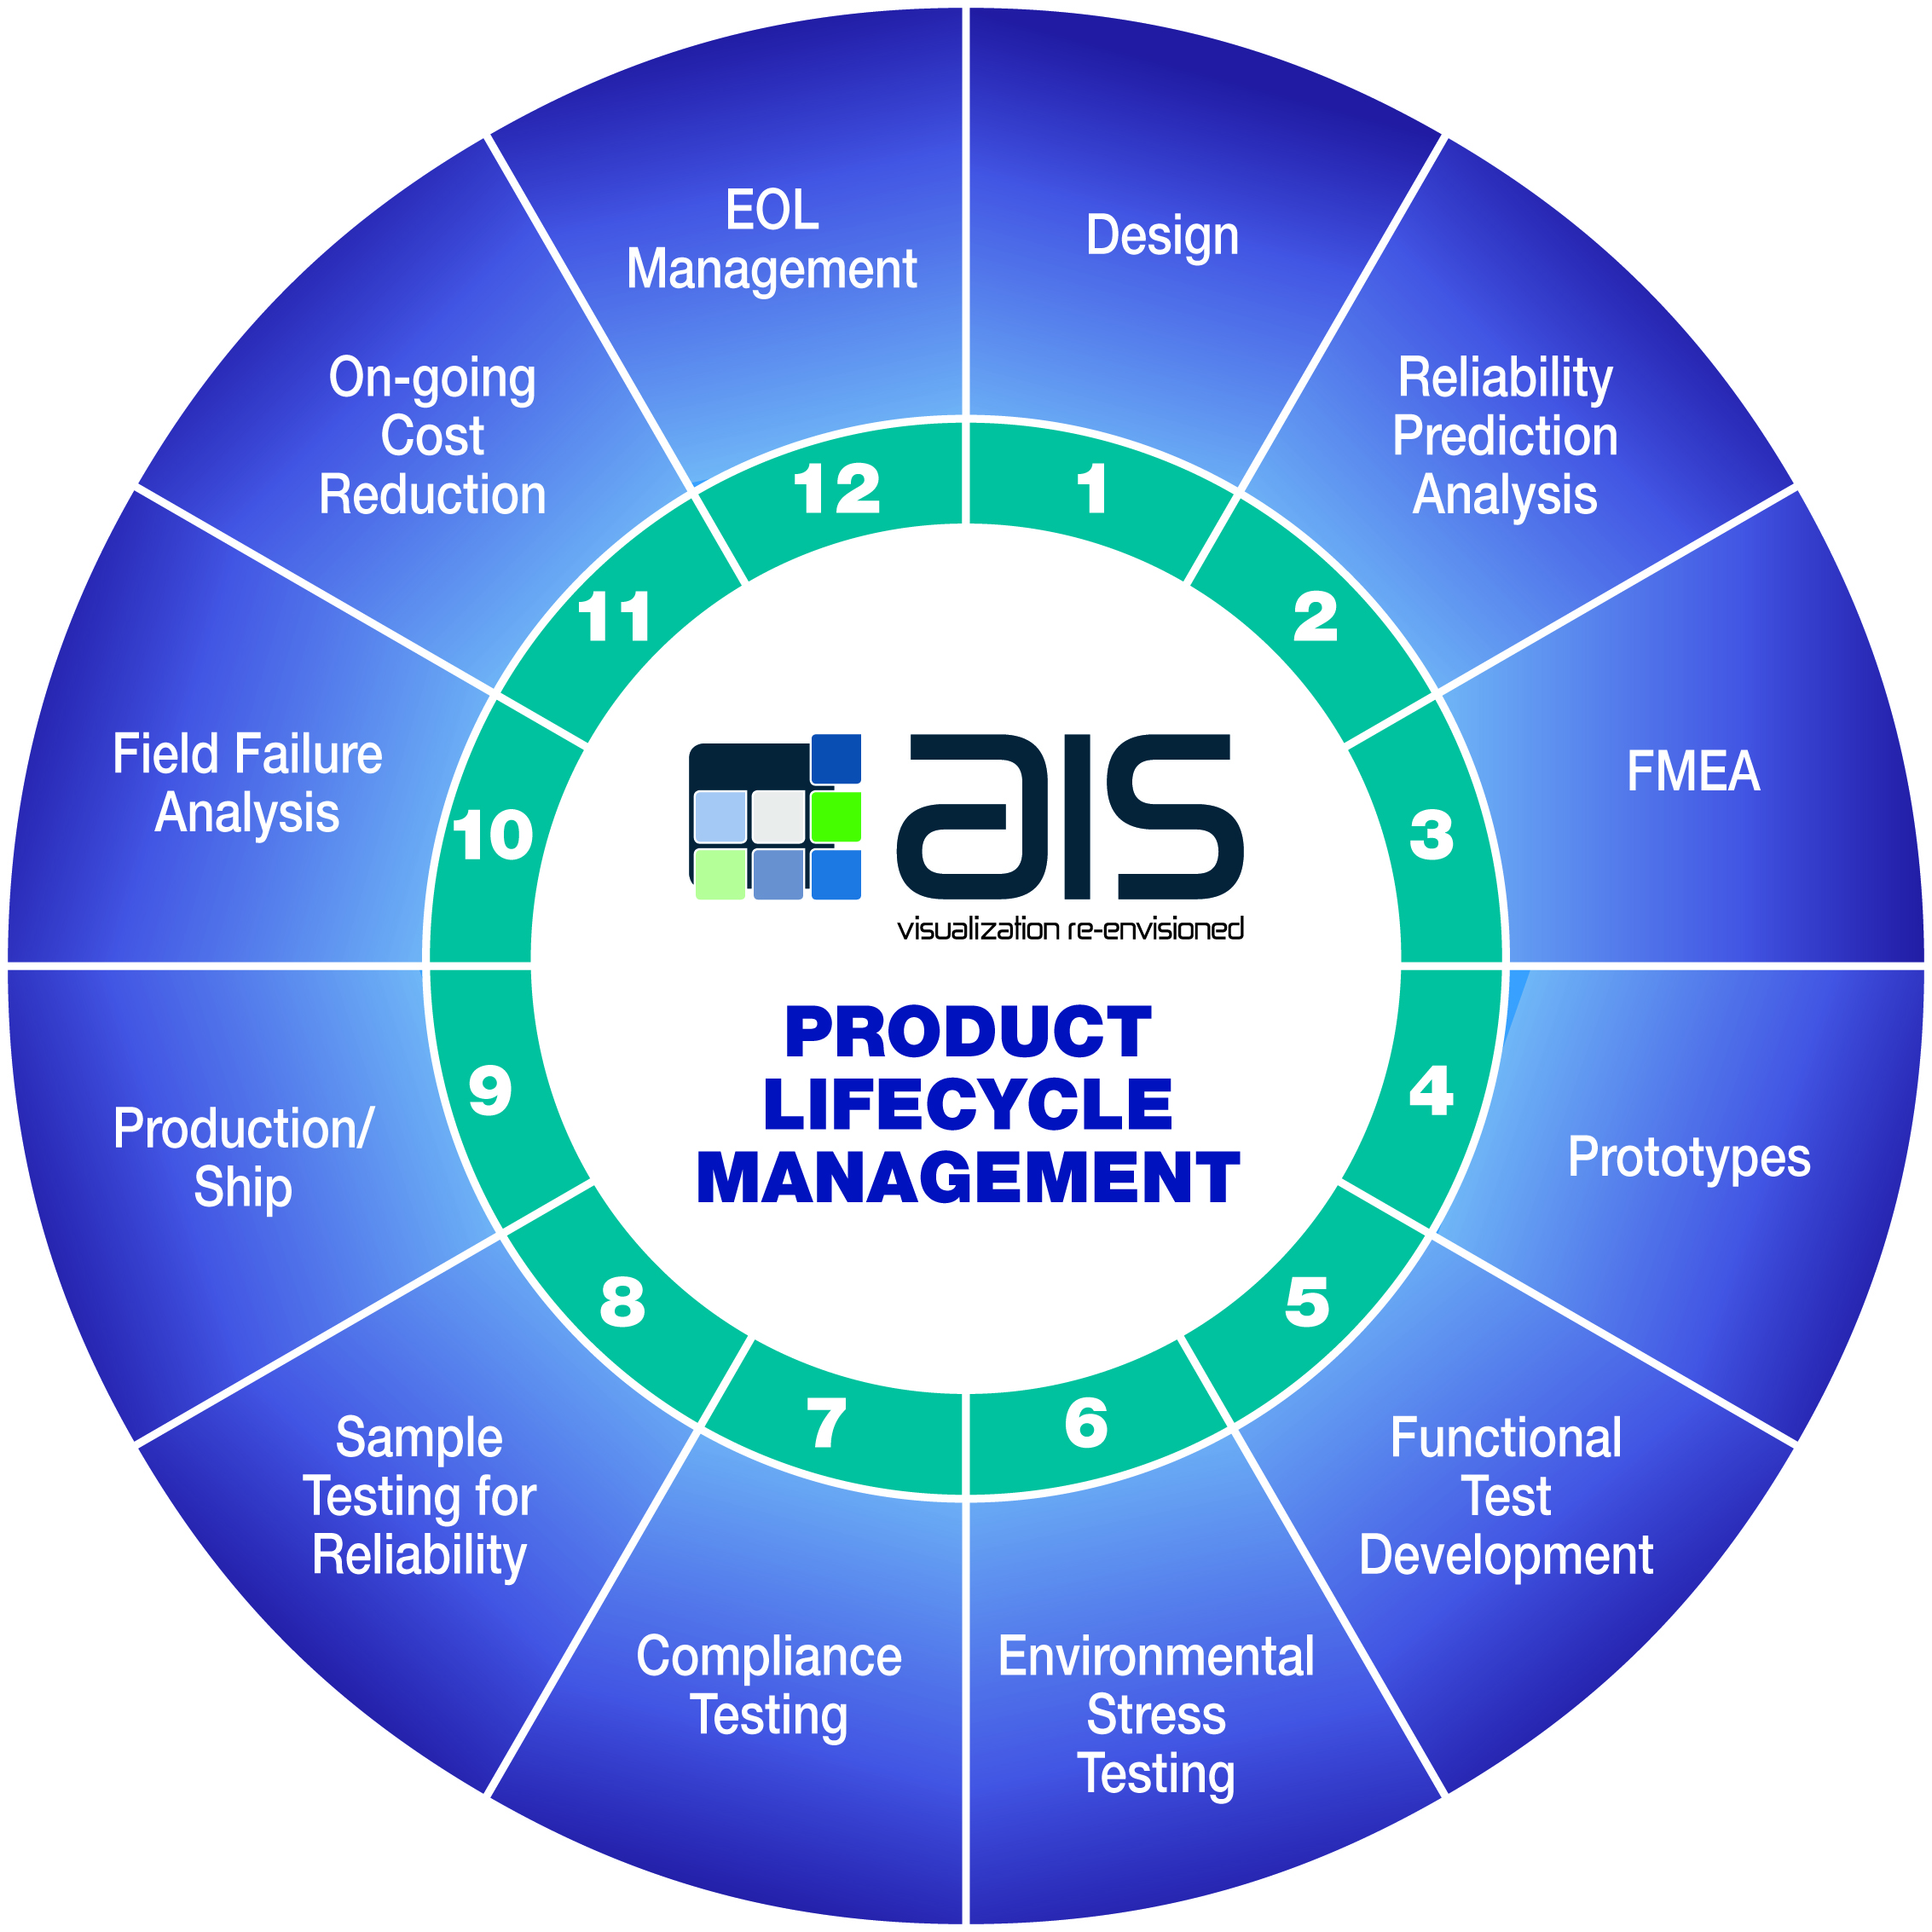 Product Lifecycle Management (PLM) Capabilities